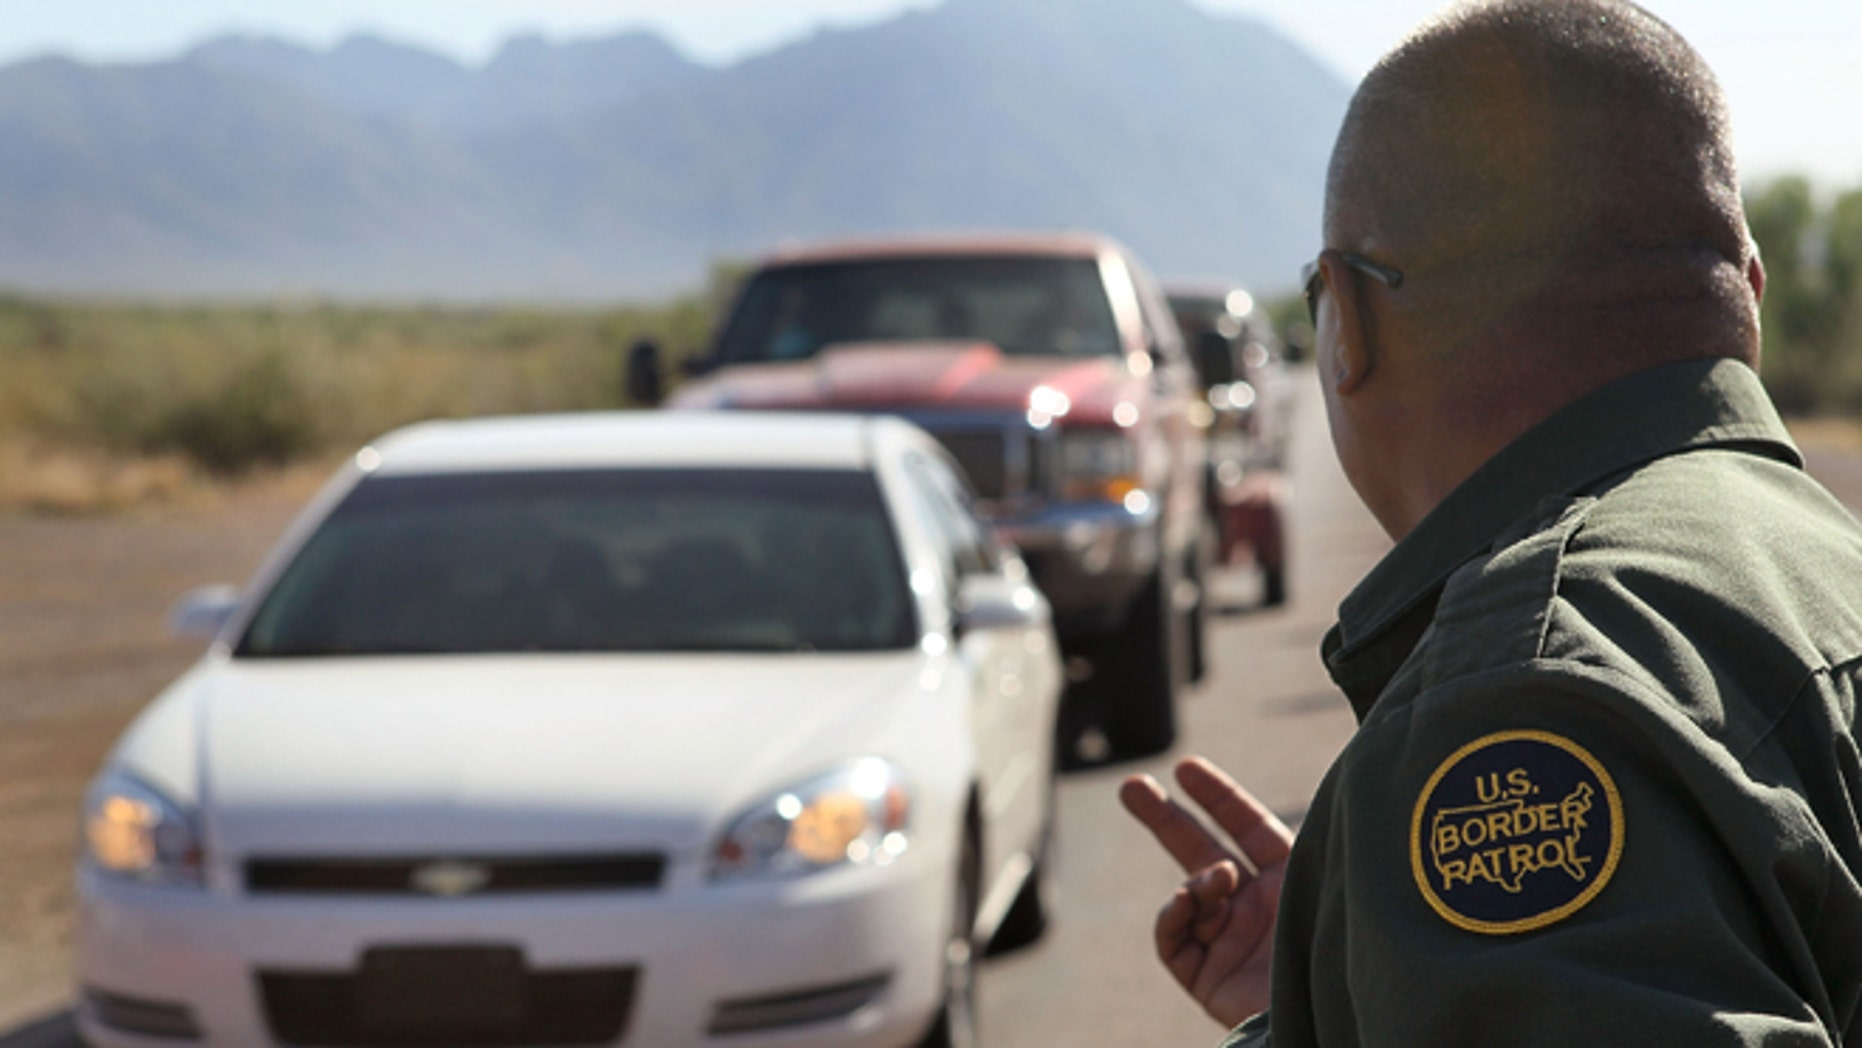 A Border Patrol agent checks vehicles for illegal immigrants and contraband at a roadside checkpoint June 1, 2010 near Sasabe, Arizona. (Photo by Scott Olson/Getty Images)